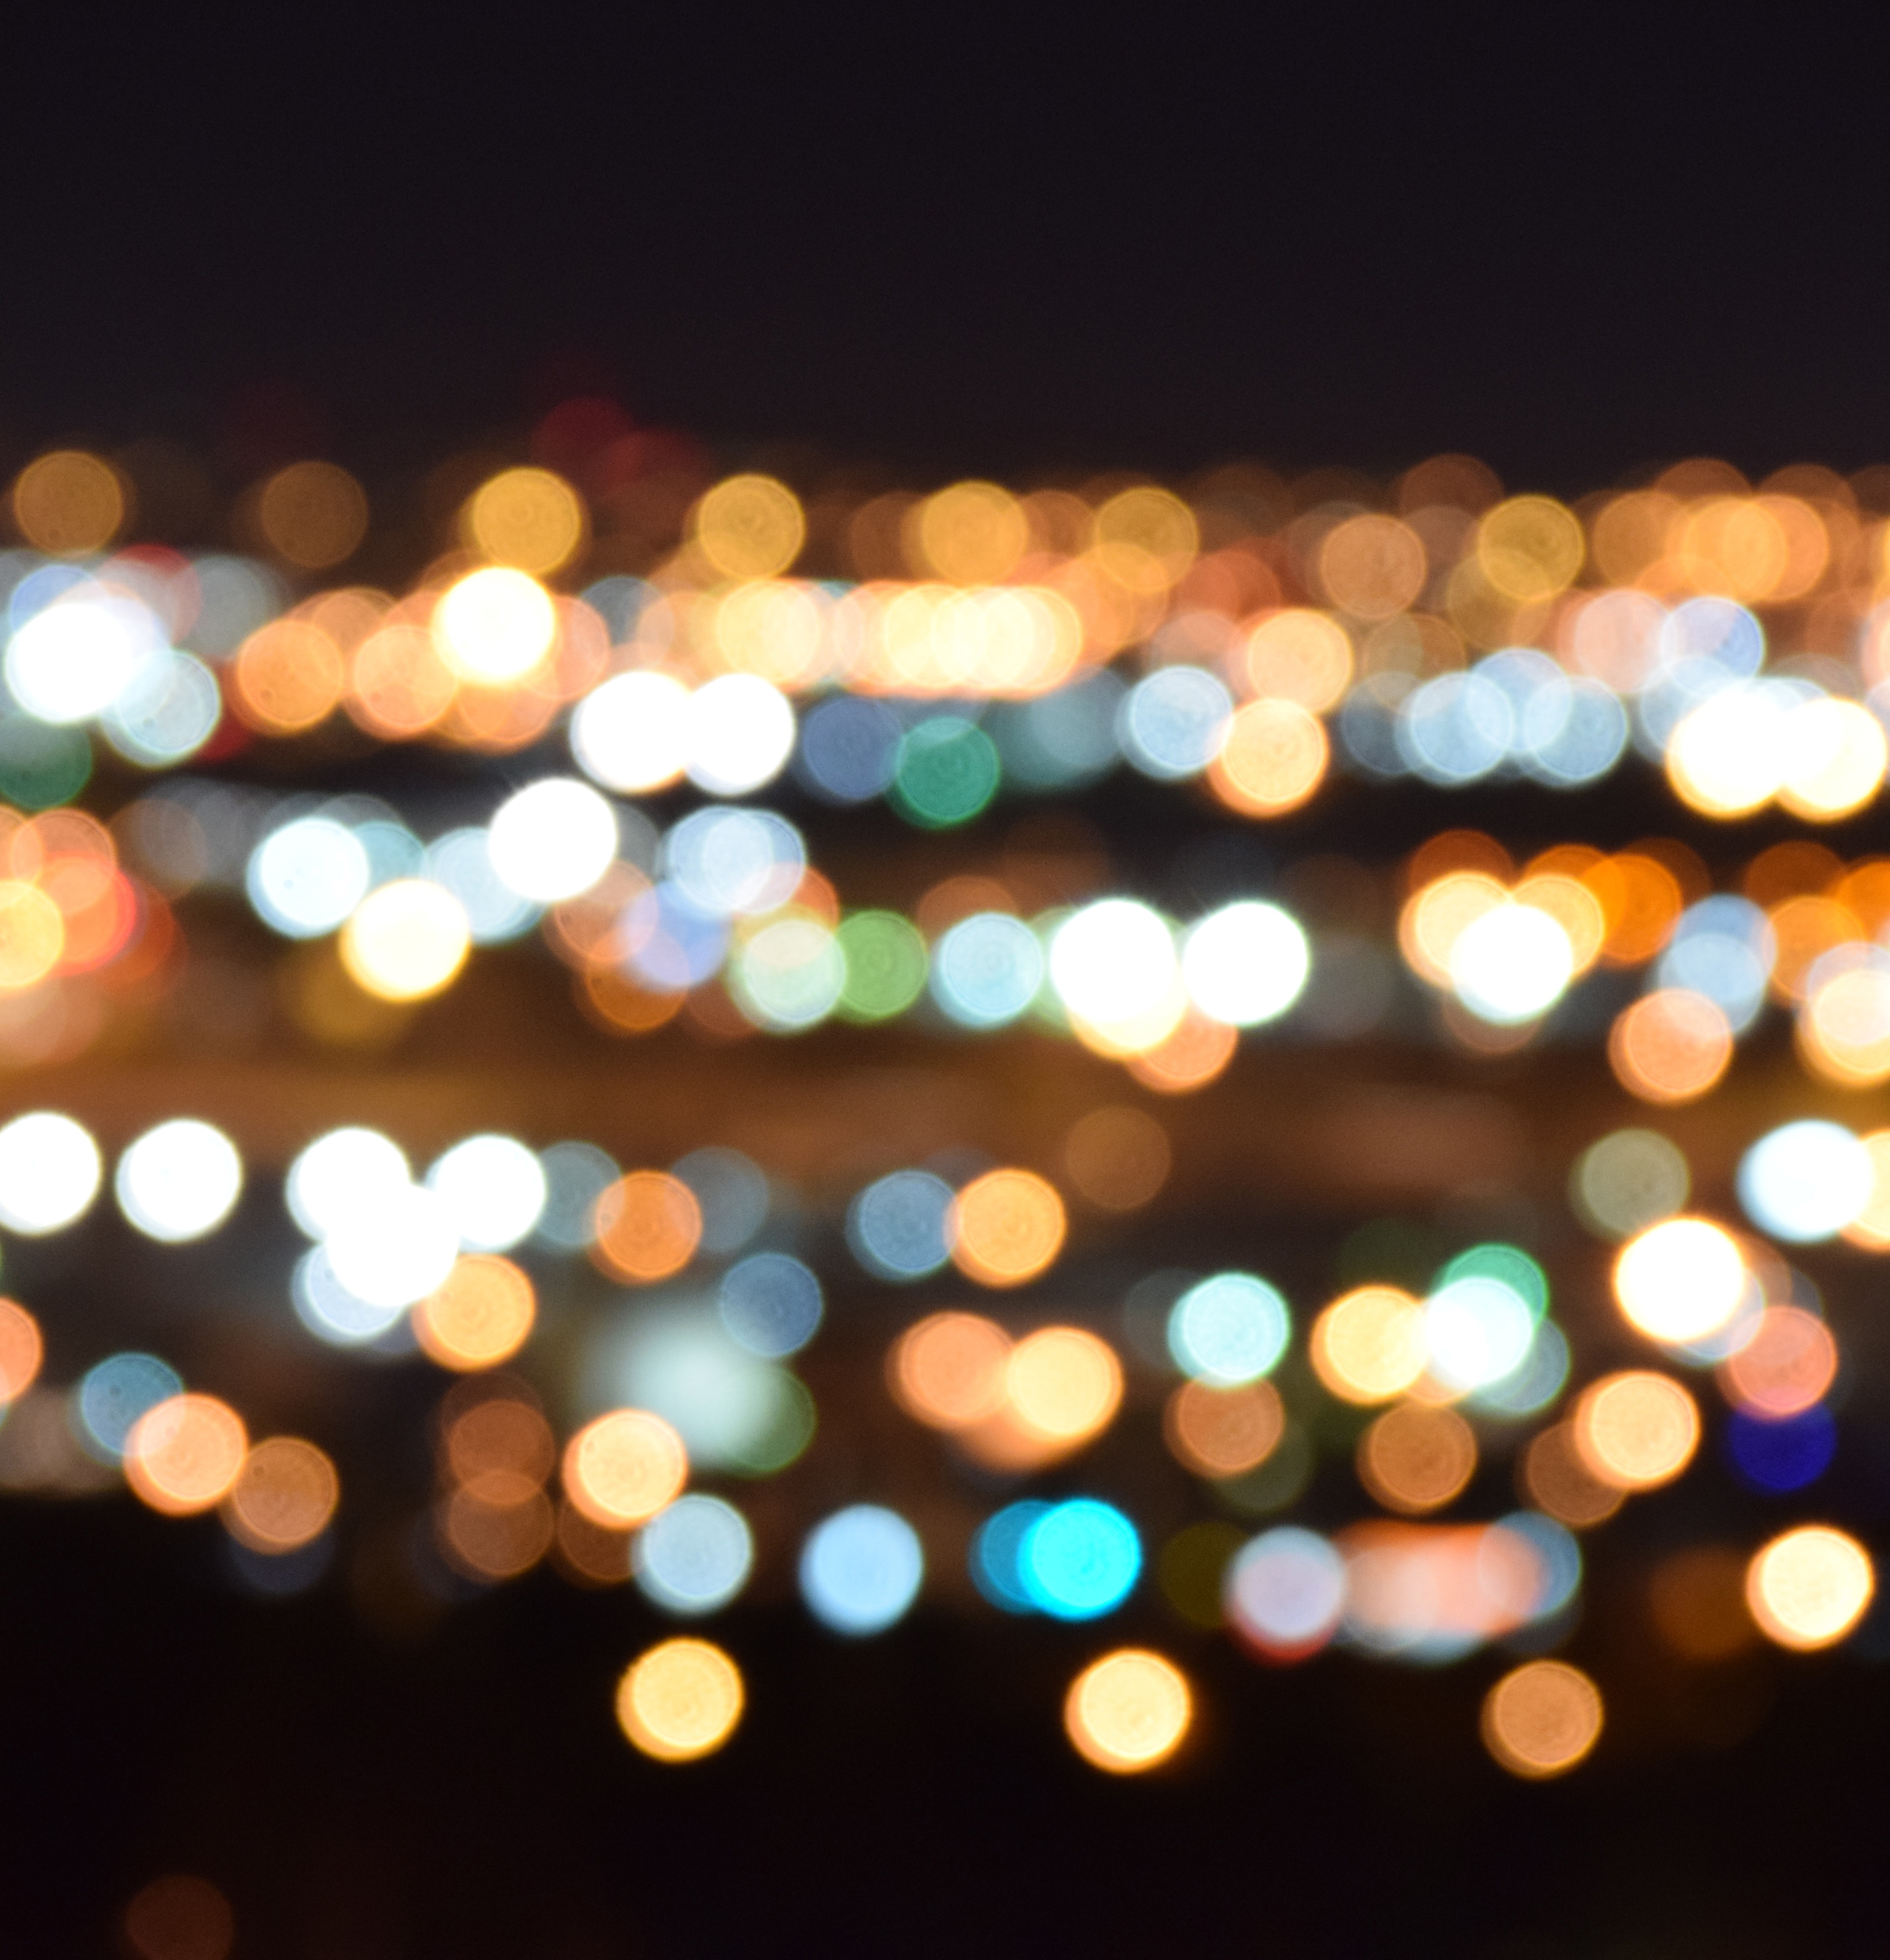 A picture of city lights at night